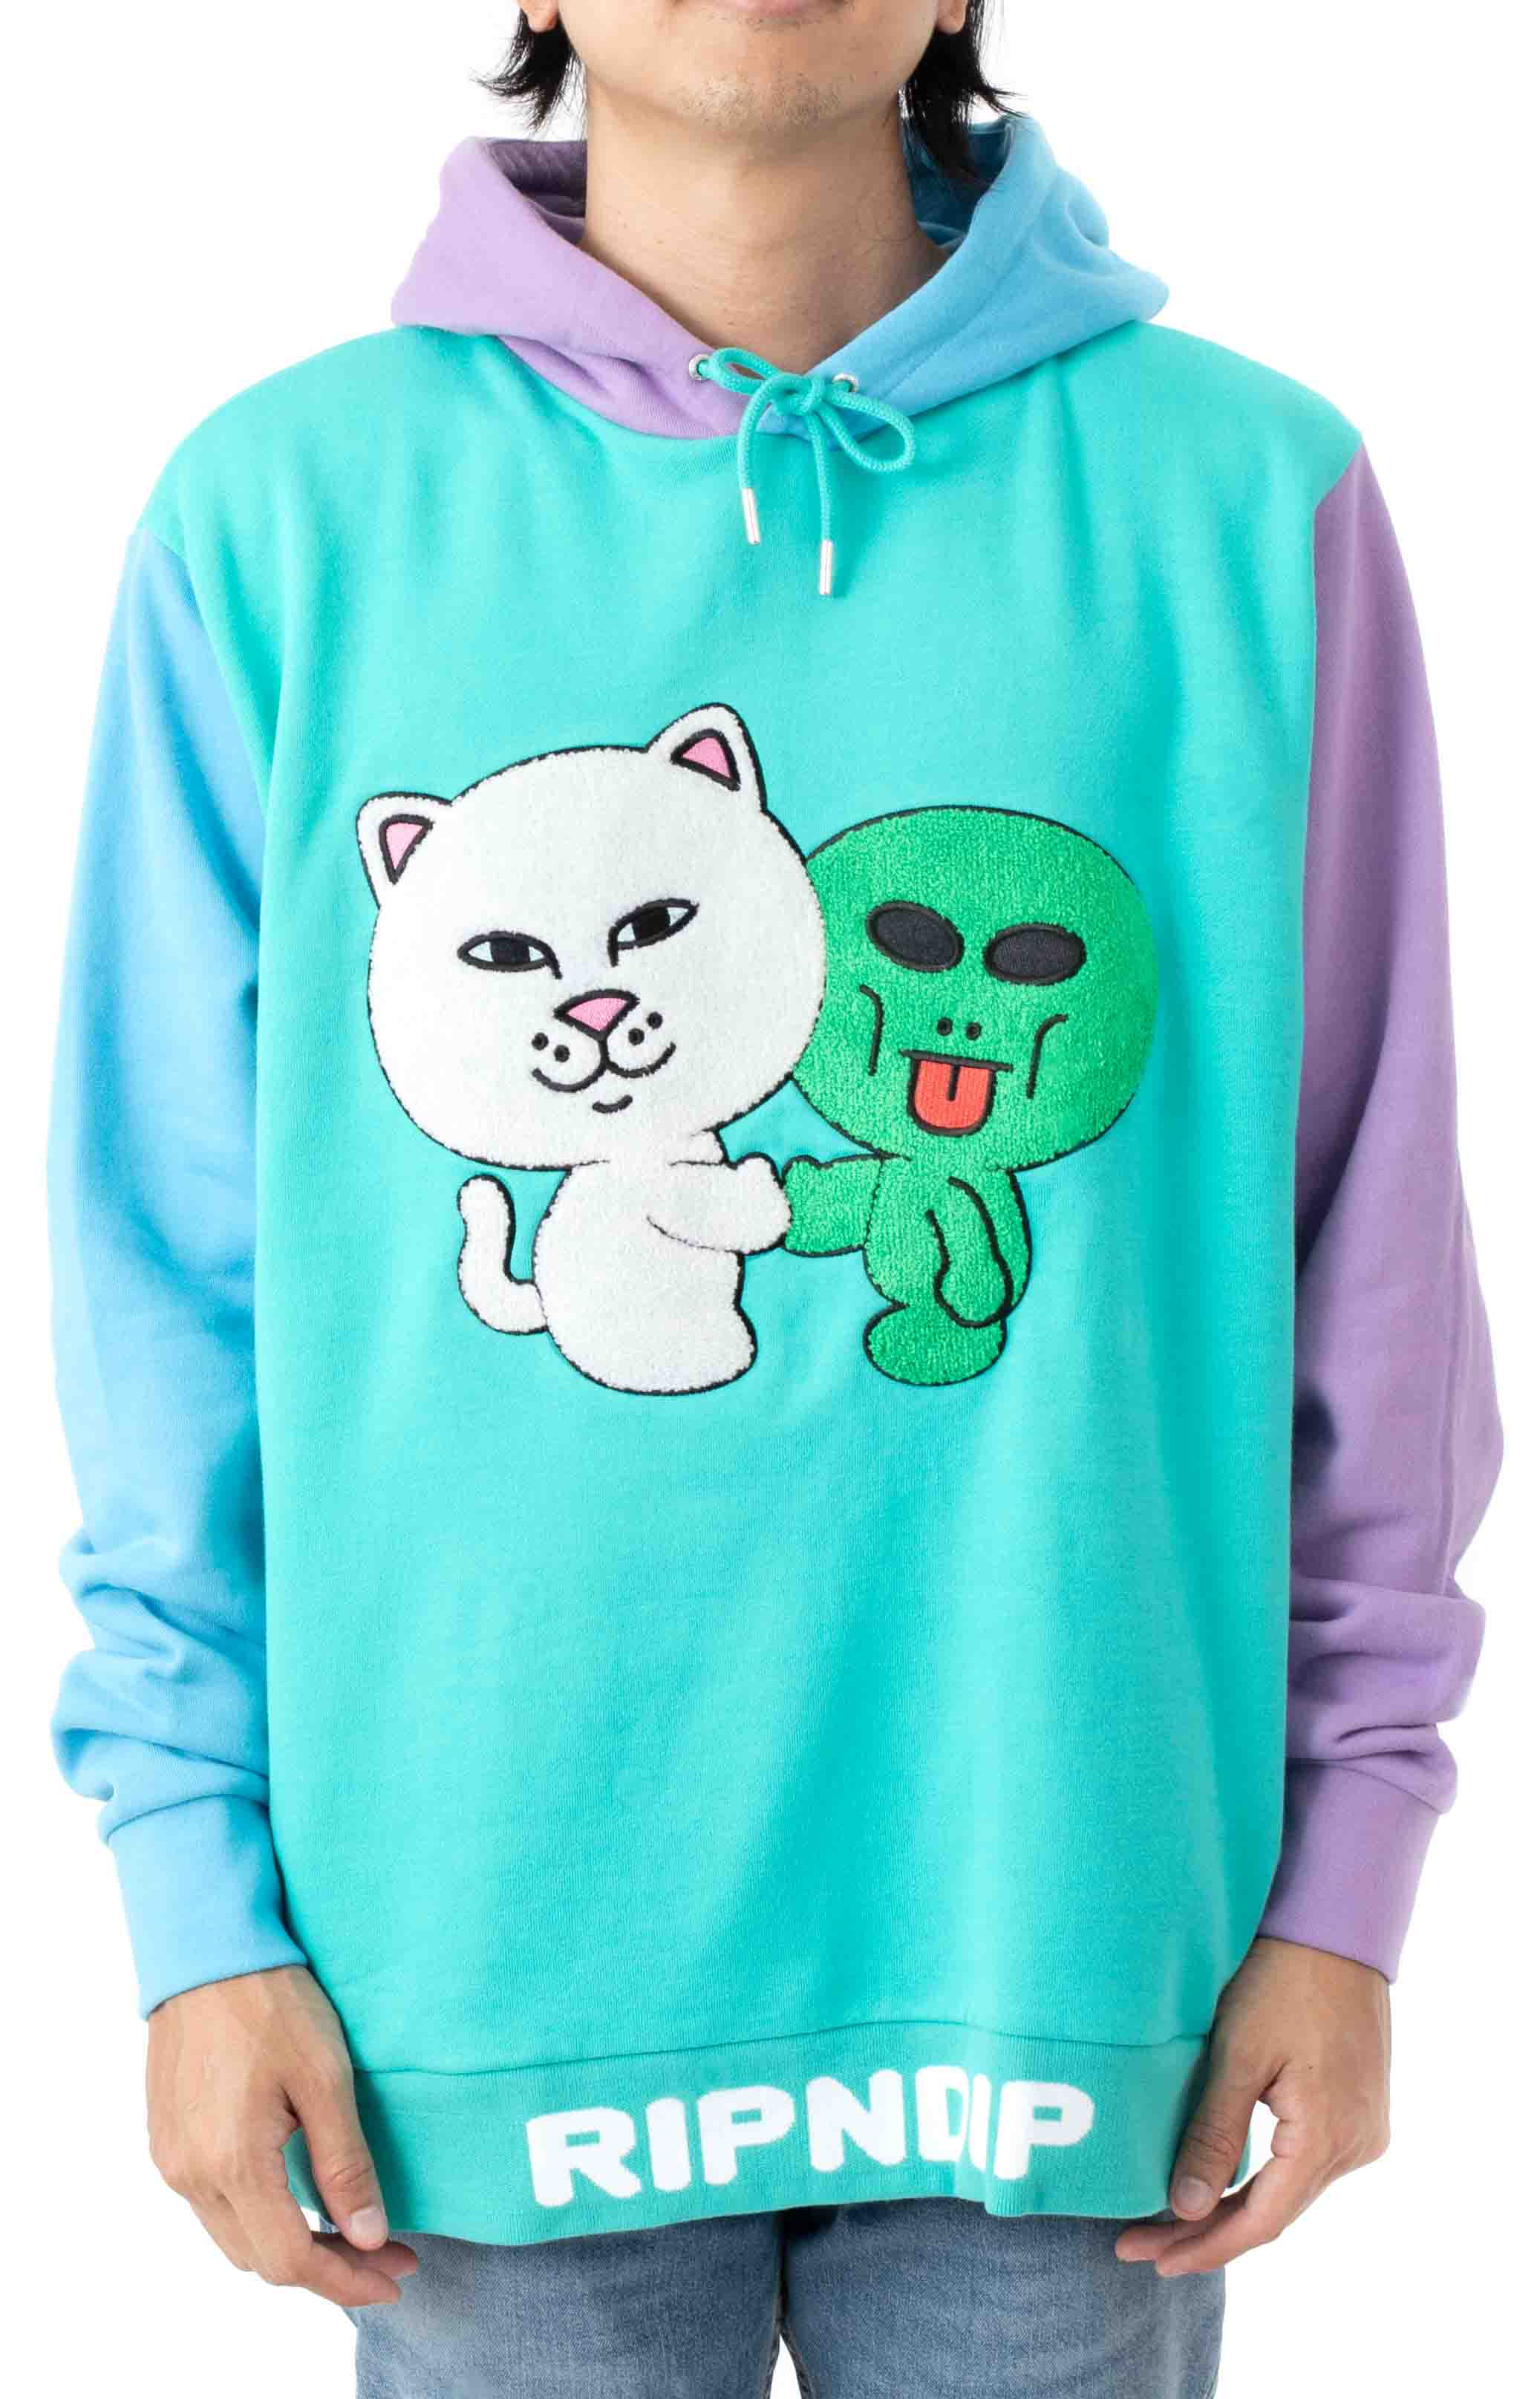 Buddy System Color Block Pullover Hoodie - Multi